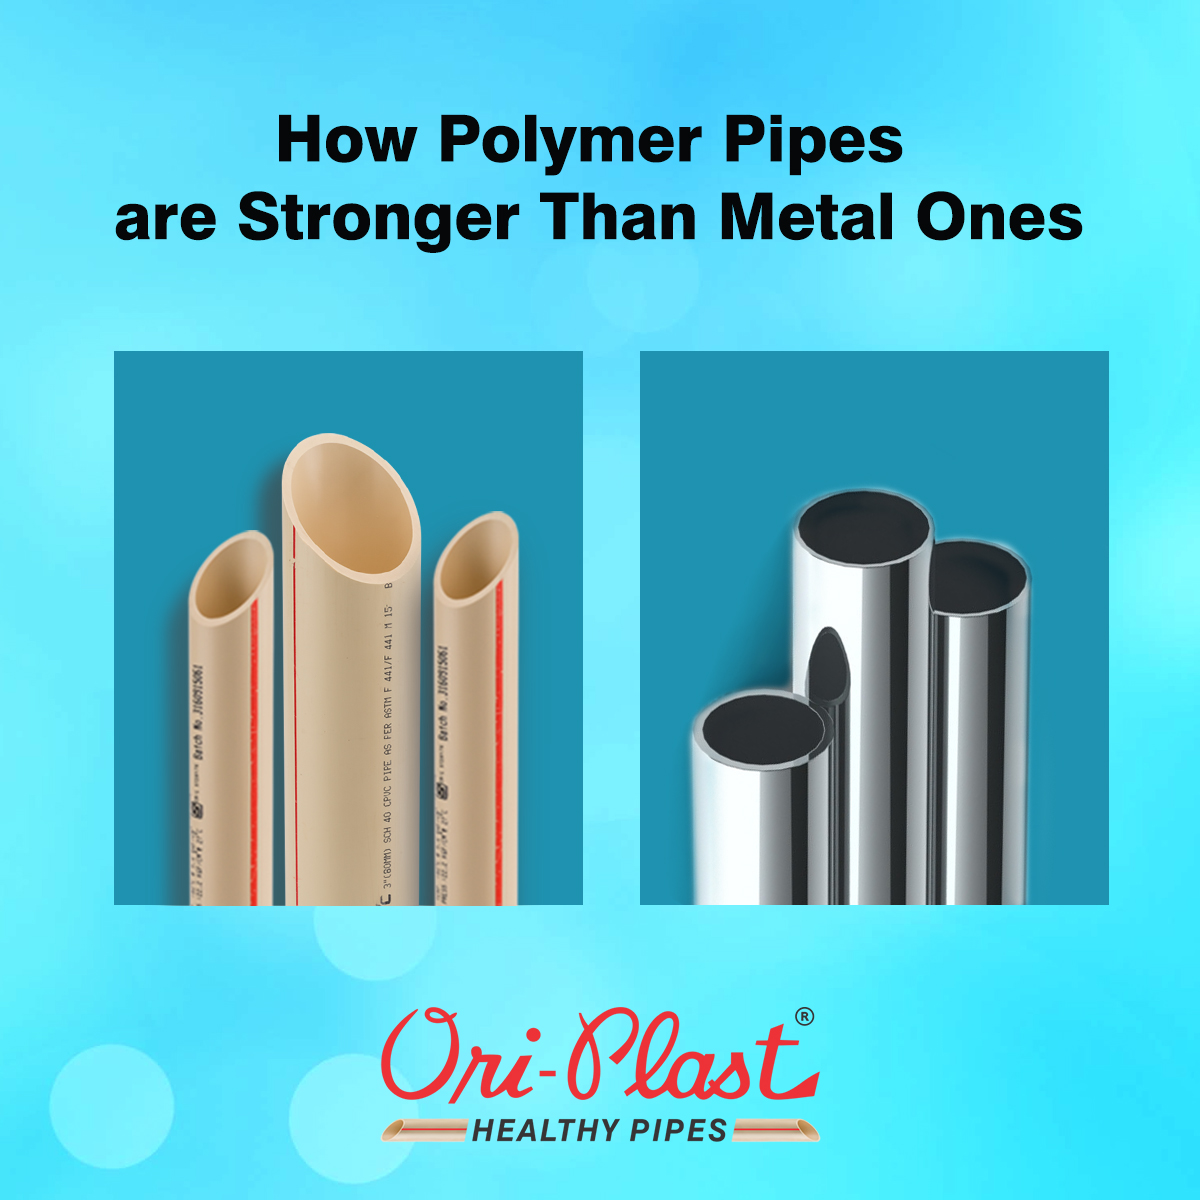 How Polymer Pipes are Stronger Than Metal Ones